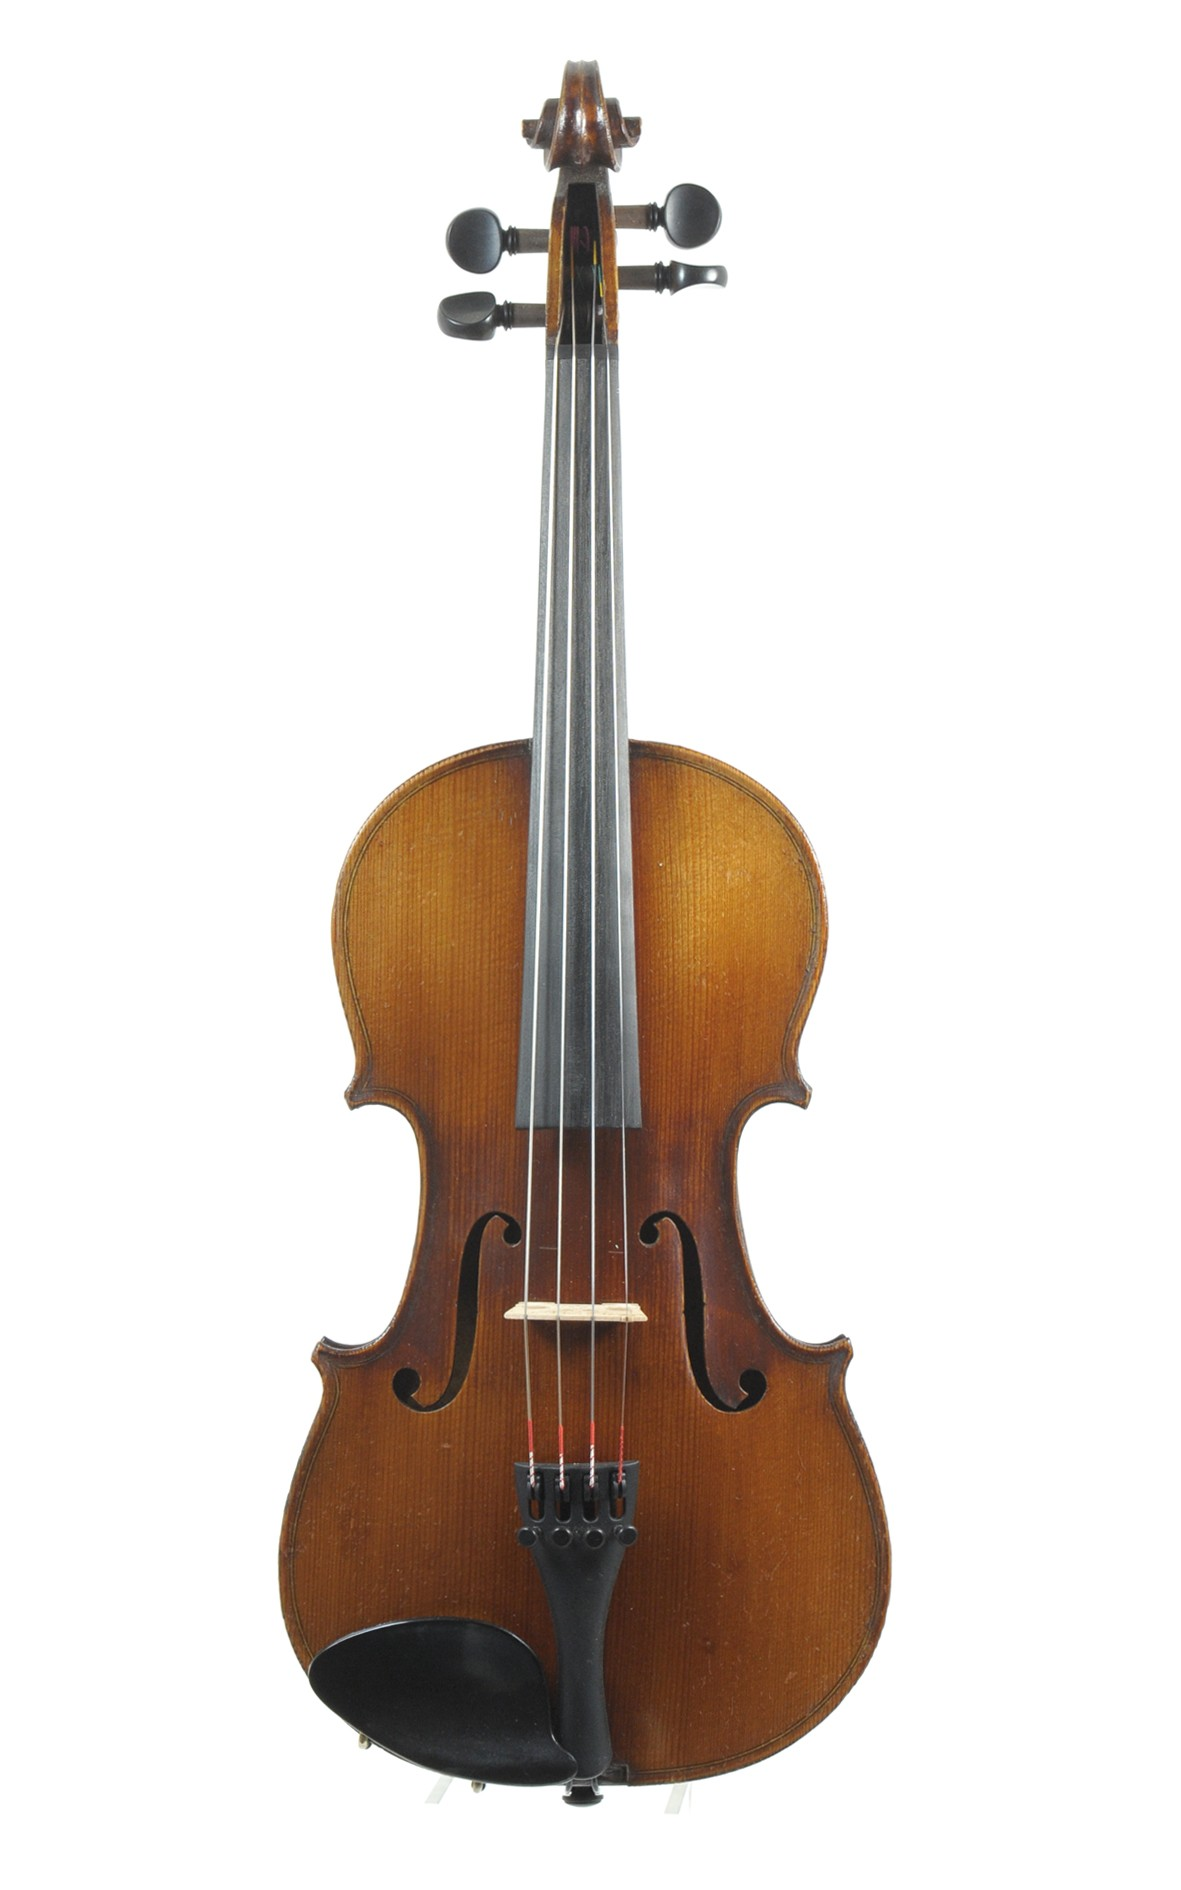 3/4 violin Mirecourt approx. 1930 - top view